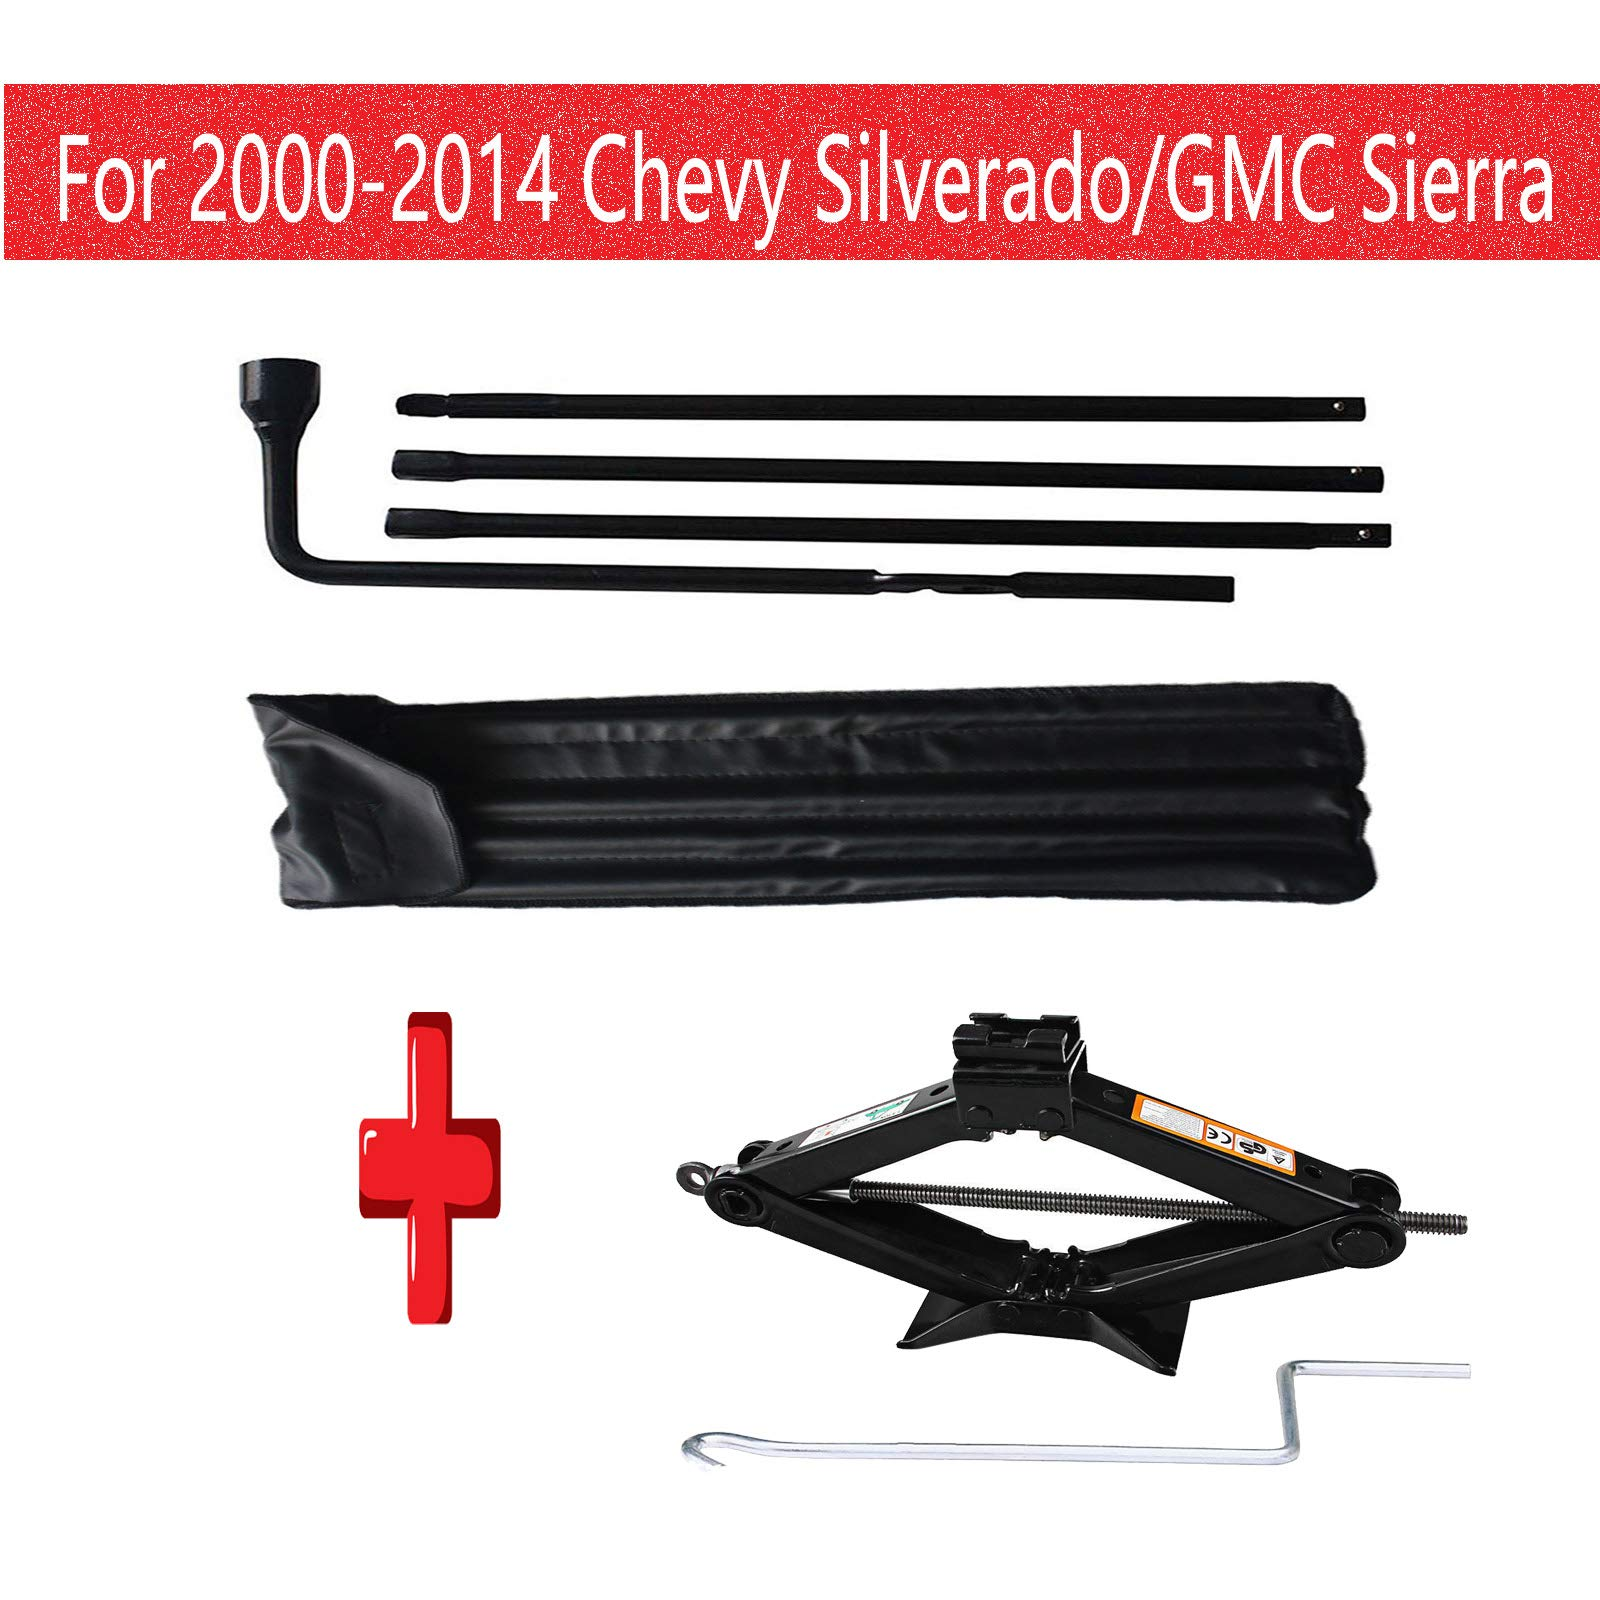 Xinner for Chevy Silverado GMC Sierra 2000-2014 Spare Tire Lug Wrench Repair Tool Kit with 2 Tonne(4000lb) Heavy Duty Scissor Jack Rust-Resistant for Car